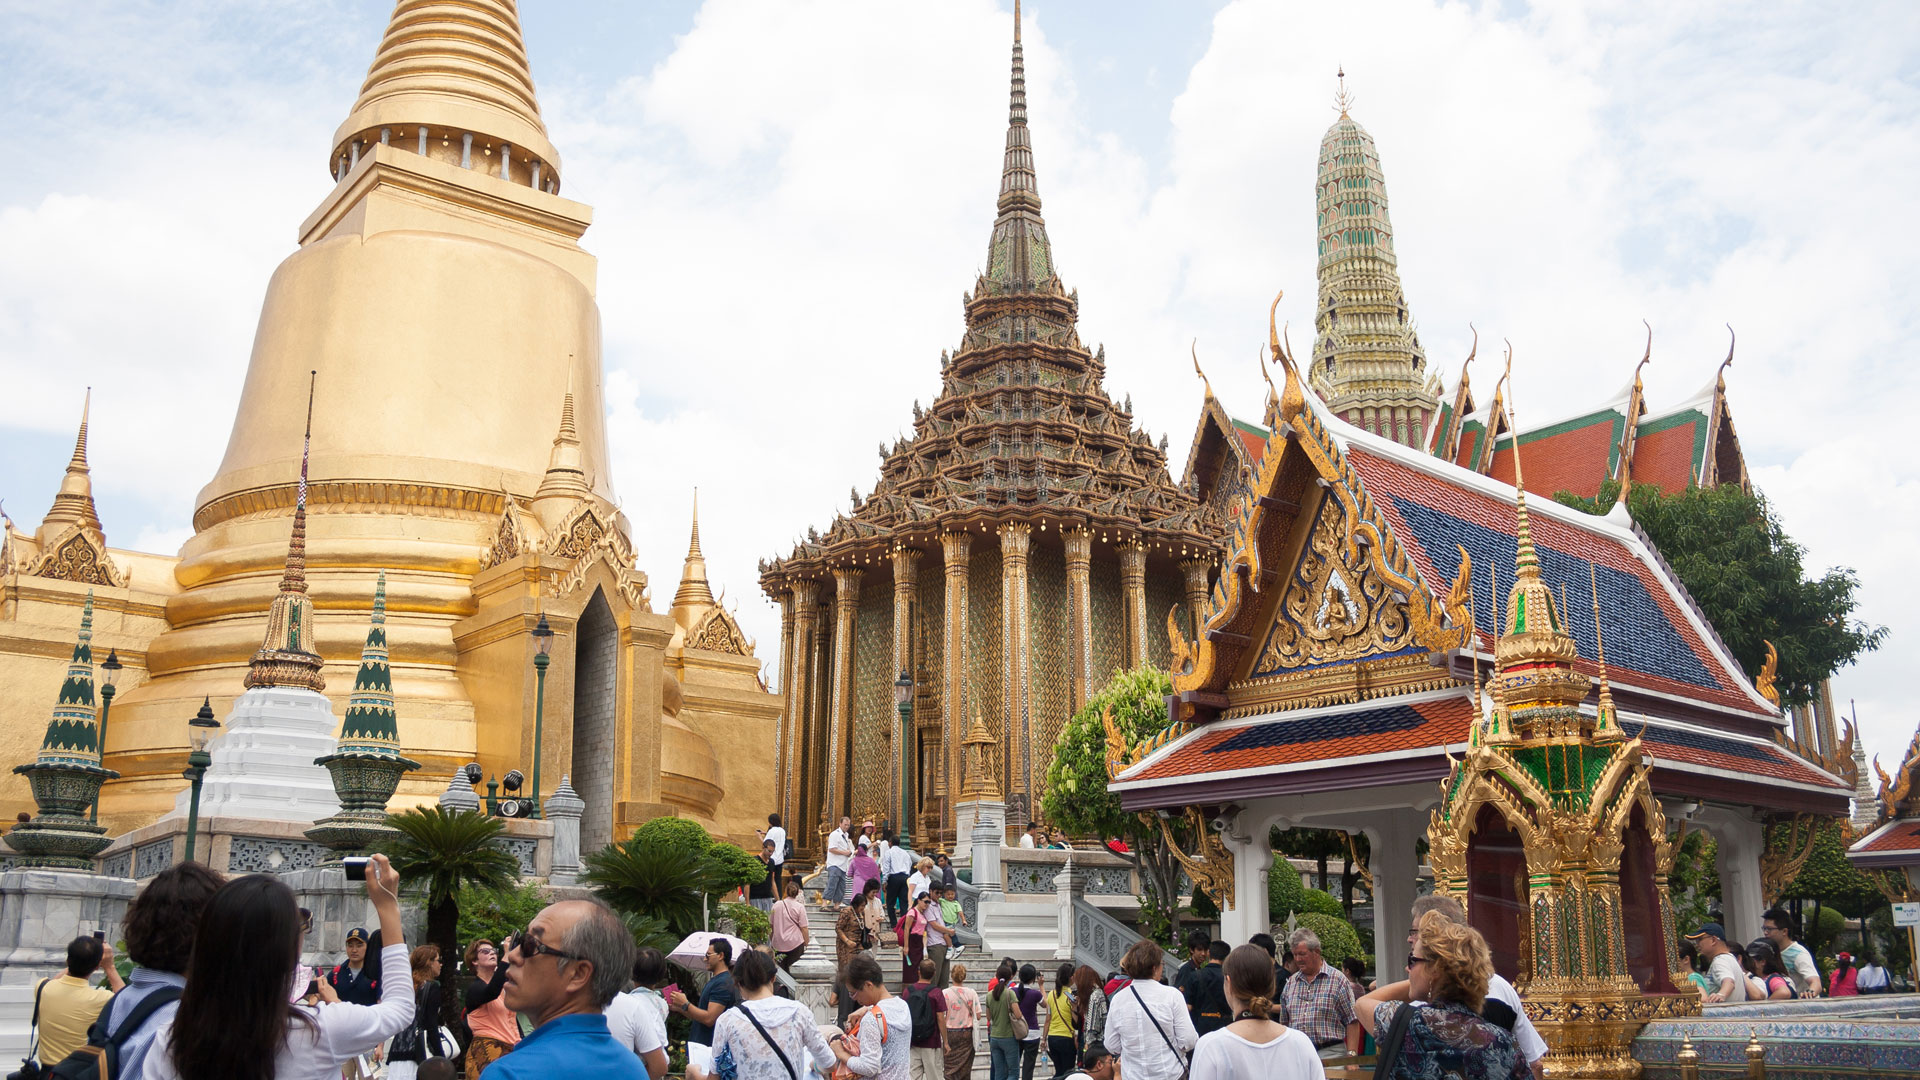 Crowds at Grand Palace in Bangkok